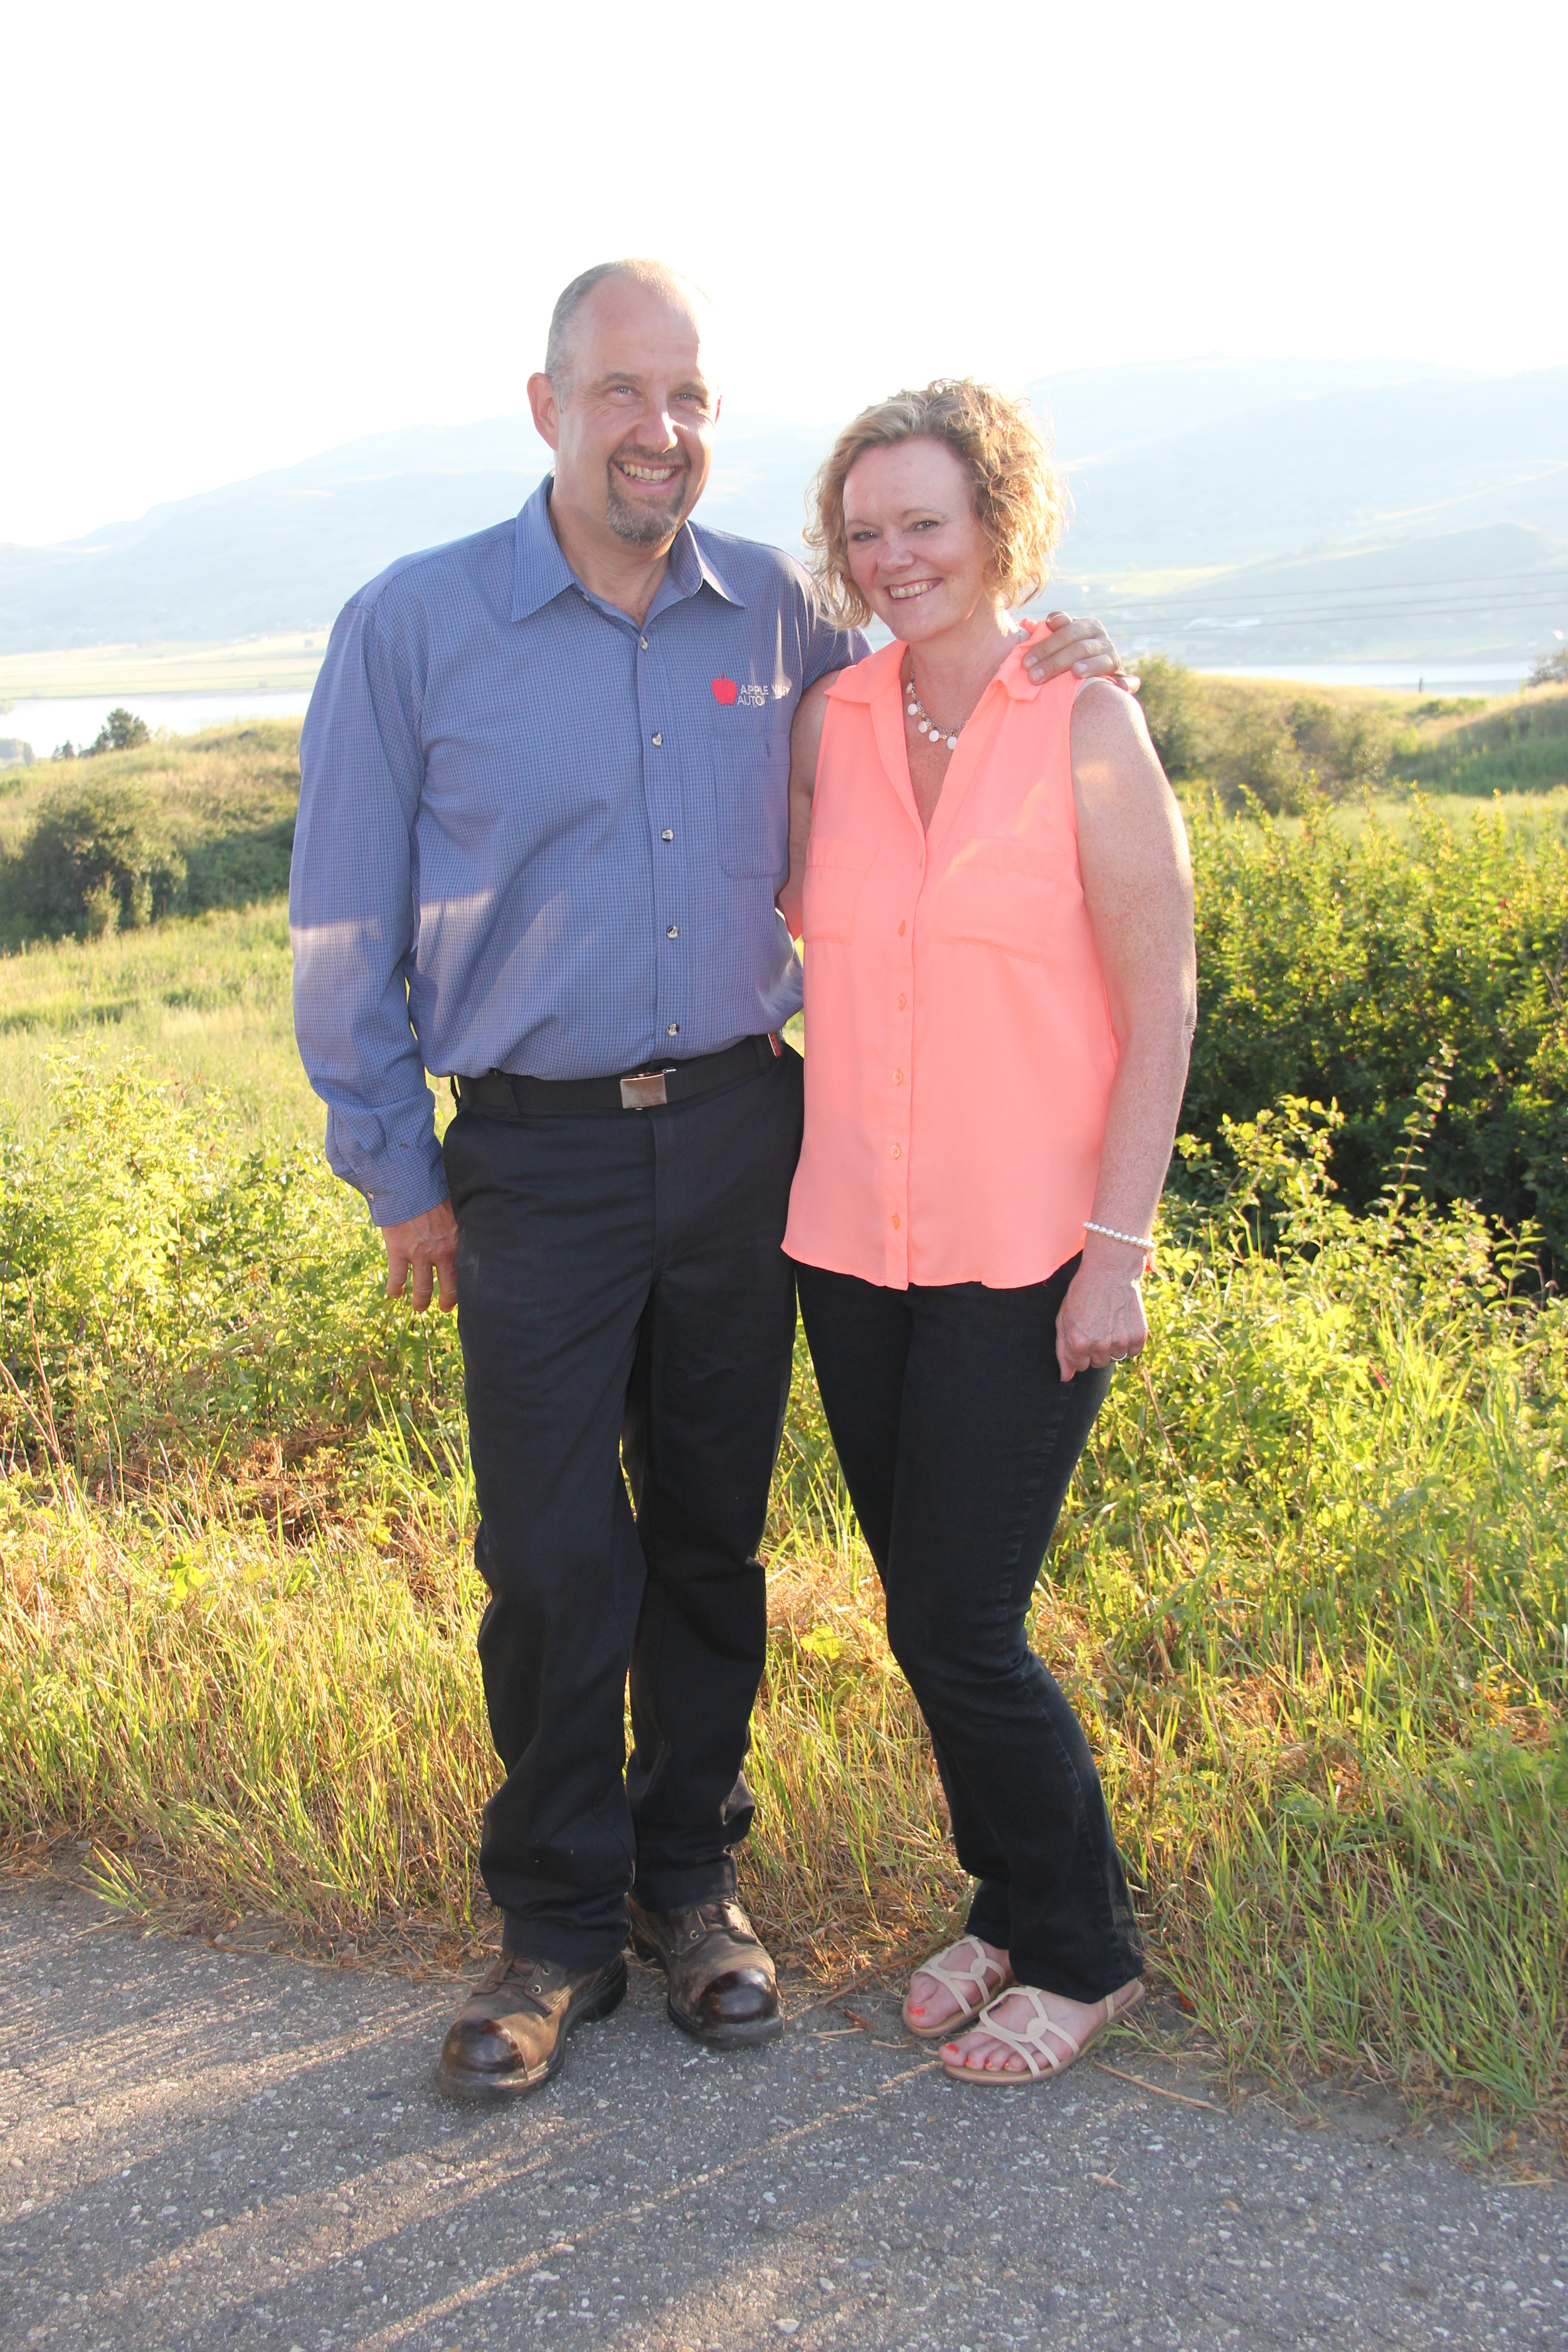 Janet & Randy Nyland - Owners